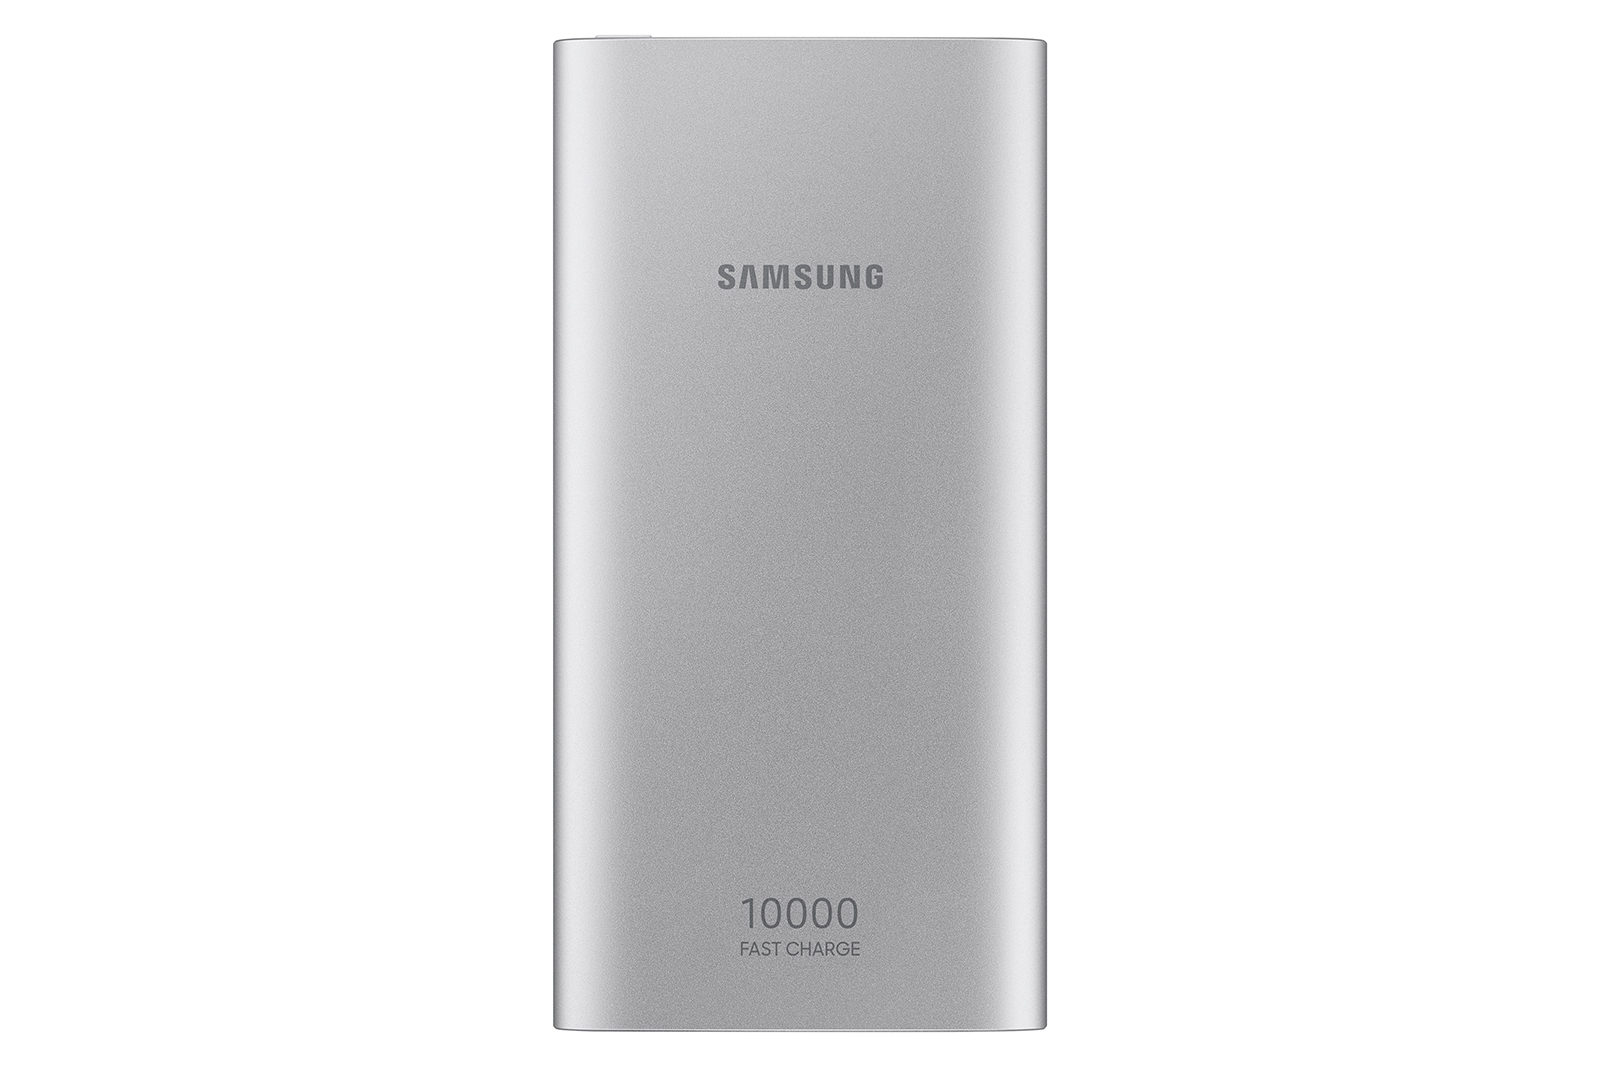 Samsung 10,000 mAh Portable Battery with Micro USB Cable, Silver